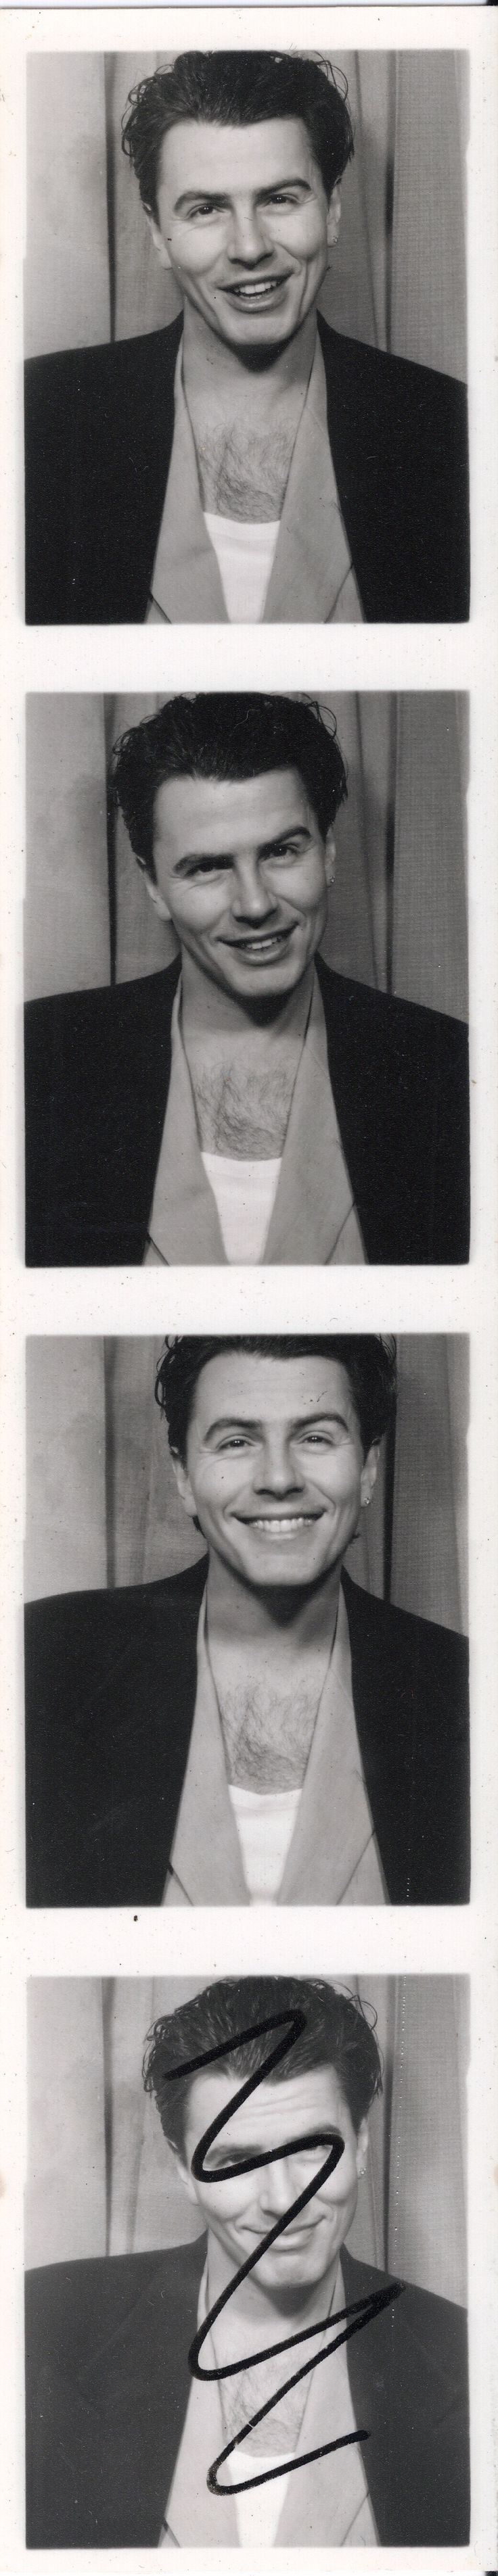 Duran Duran (the Wedding Album) - photo-booth shots, released for 20th anniversary - John Taylor